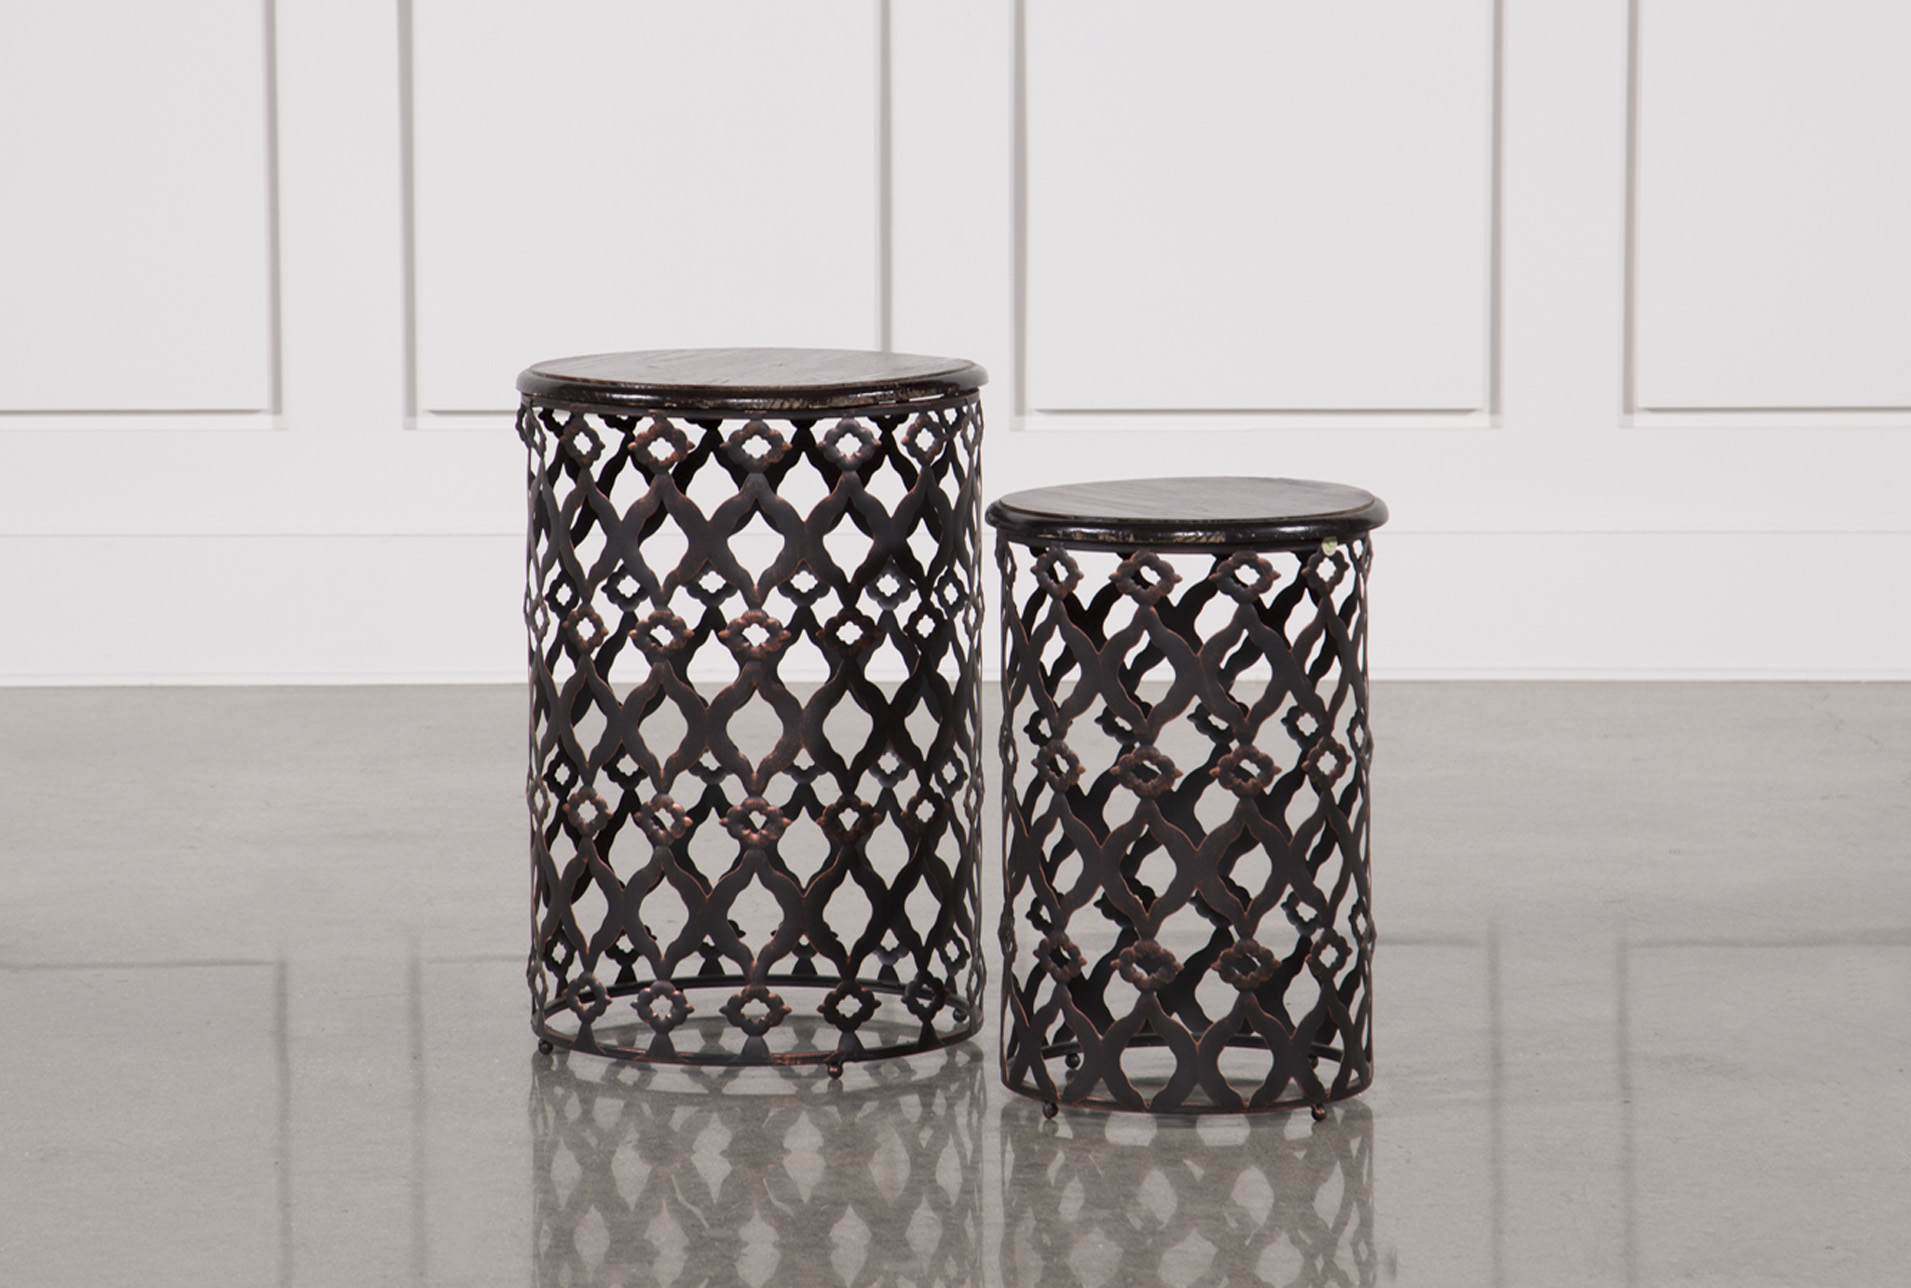 2 Piece Rustic Metal And Wood Side Tables   360